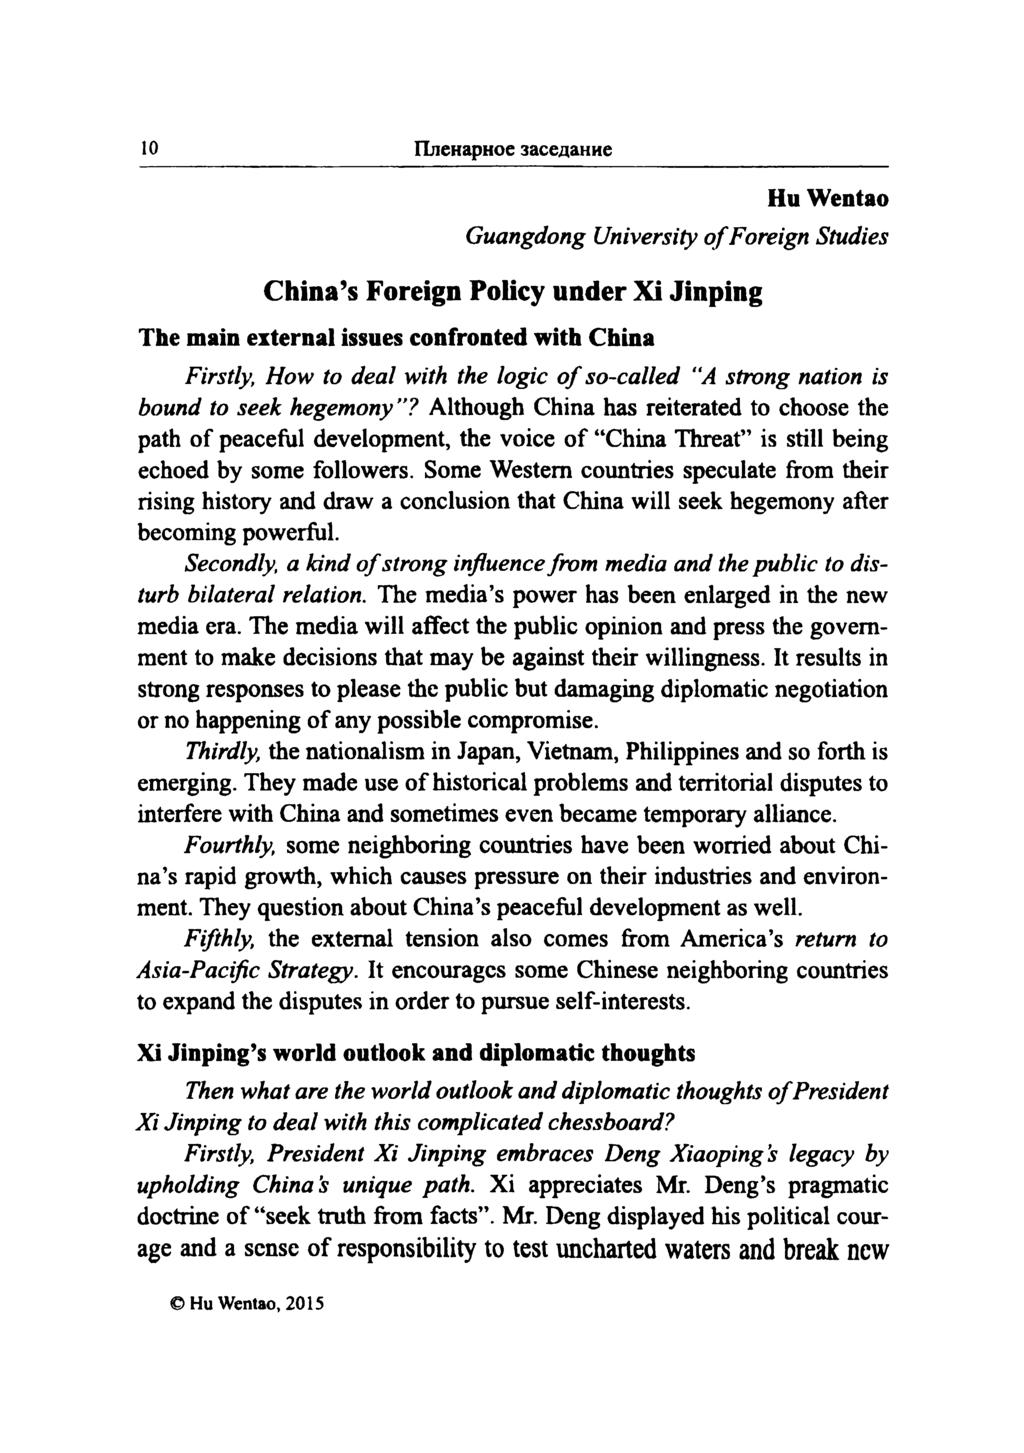 10 Пленарное заседание Hu Wentao Guangdong University o f Foreign Studies China s Foreign Policy under Xi Jinping The main external issues confronted with China Firstly, How to deal with the logic o